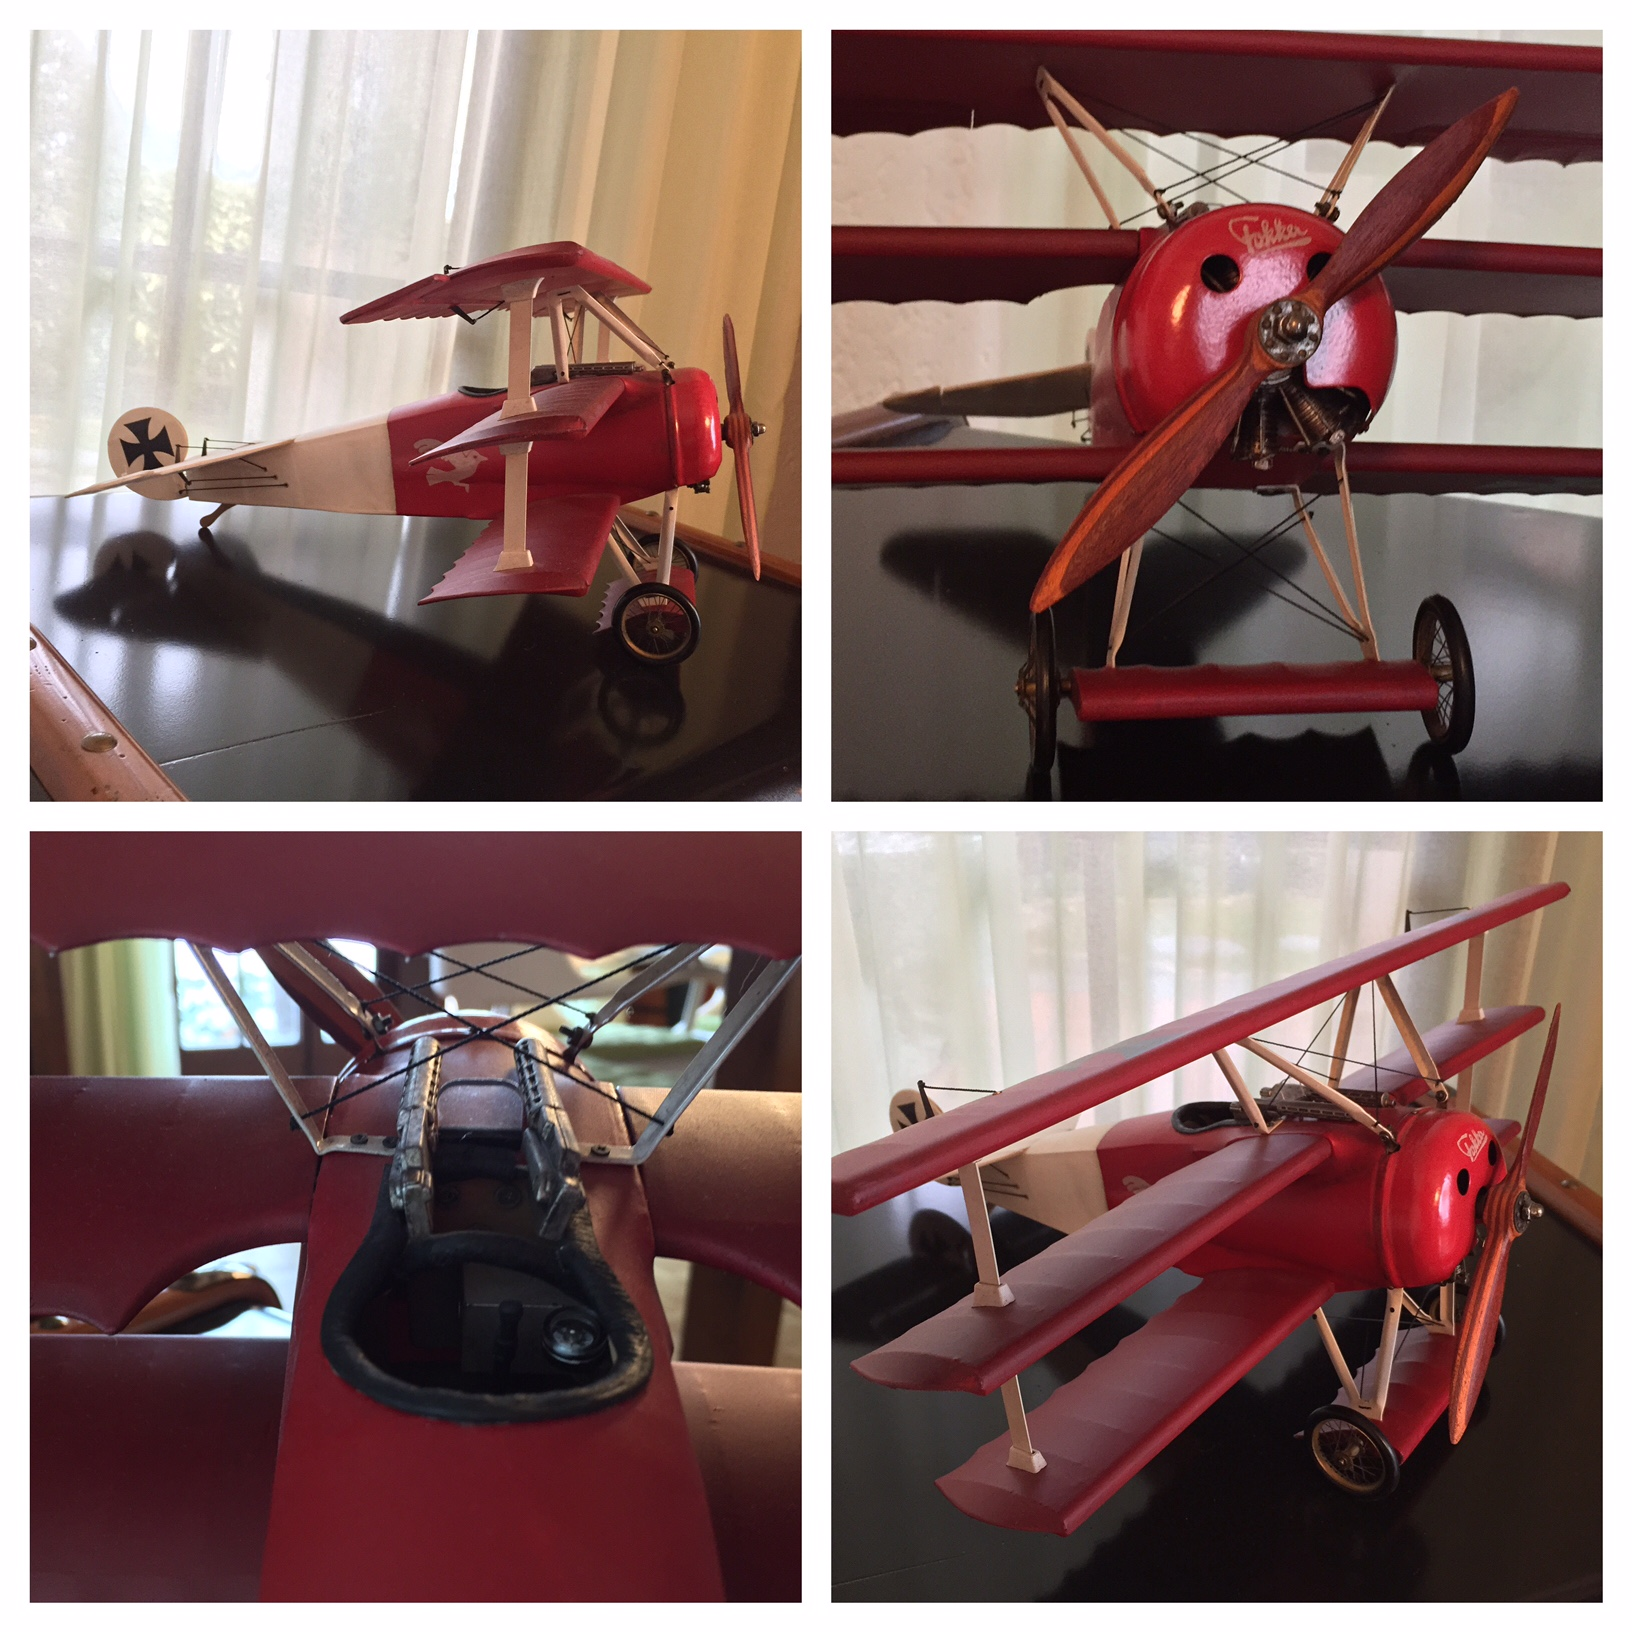 The   Fokker Triplane     model from Authentic Models, a meticulous reproduction of the Fokker fighter aircraft which was flown by the Germans during World War I and by Manfred von Richthofen, the legendary  Red Baron.